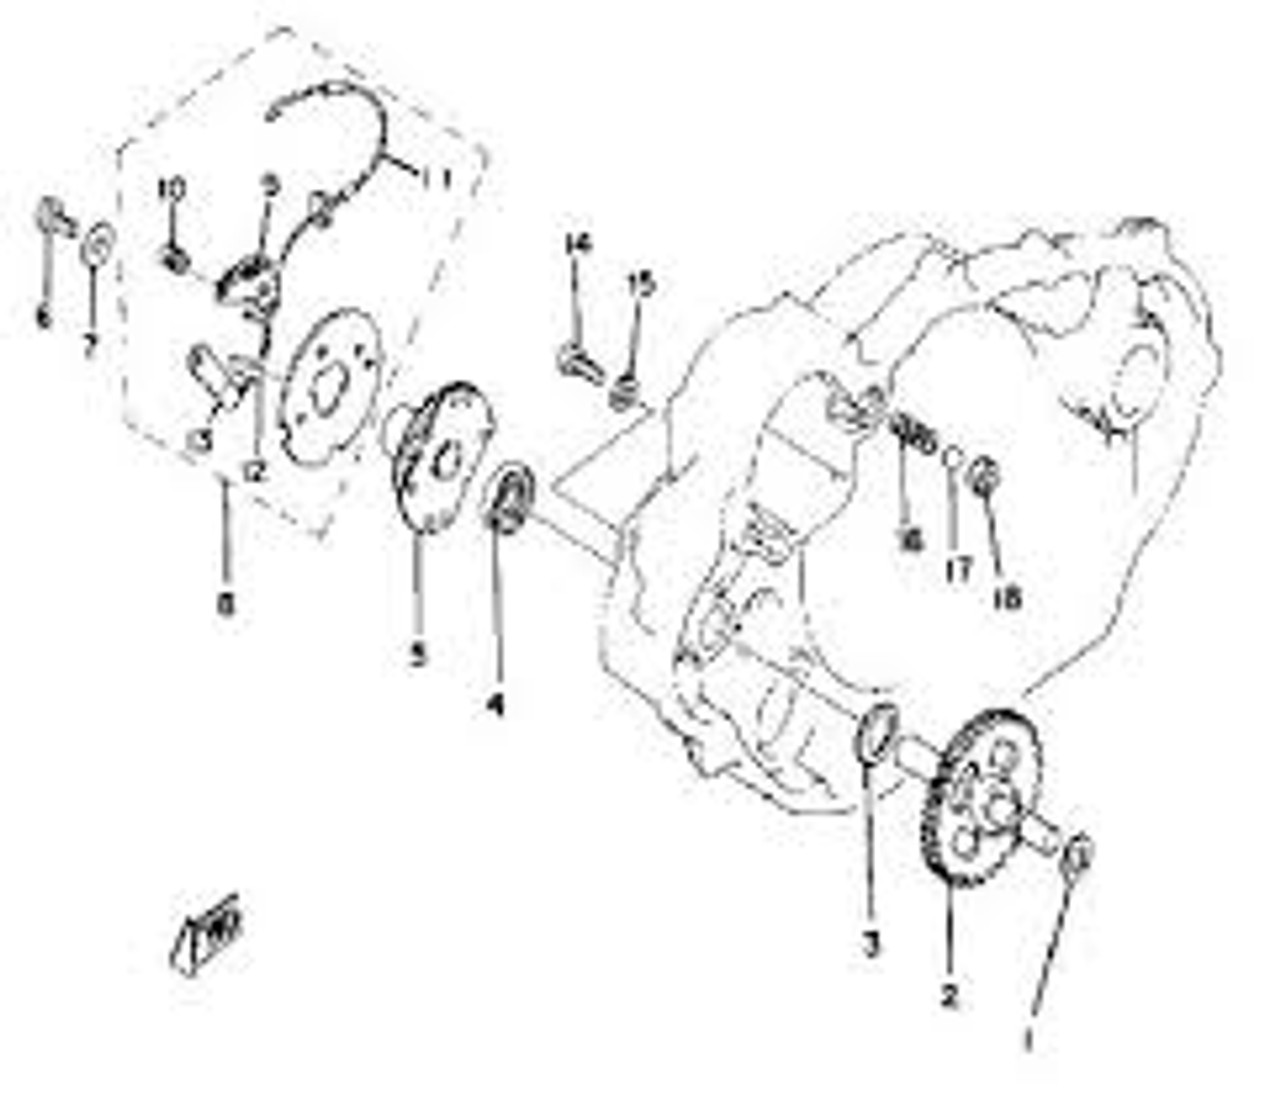 Washer for Centrifugal Governor (item #1, between Crankcase and Cogwheel), OEM reference # 90201-09572